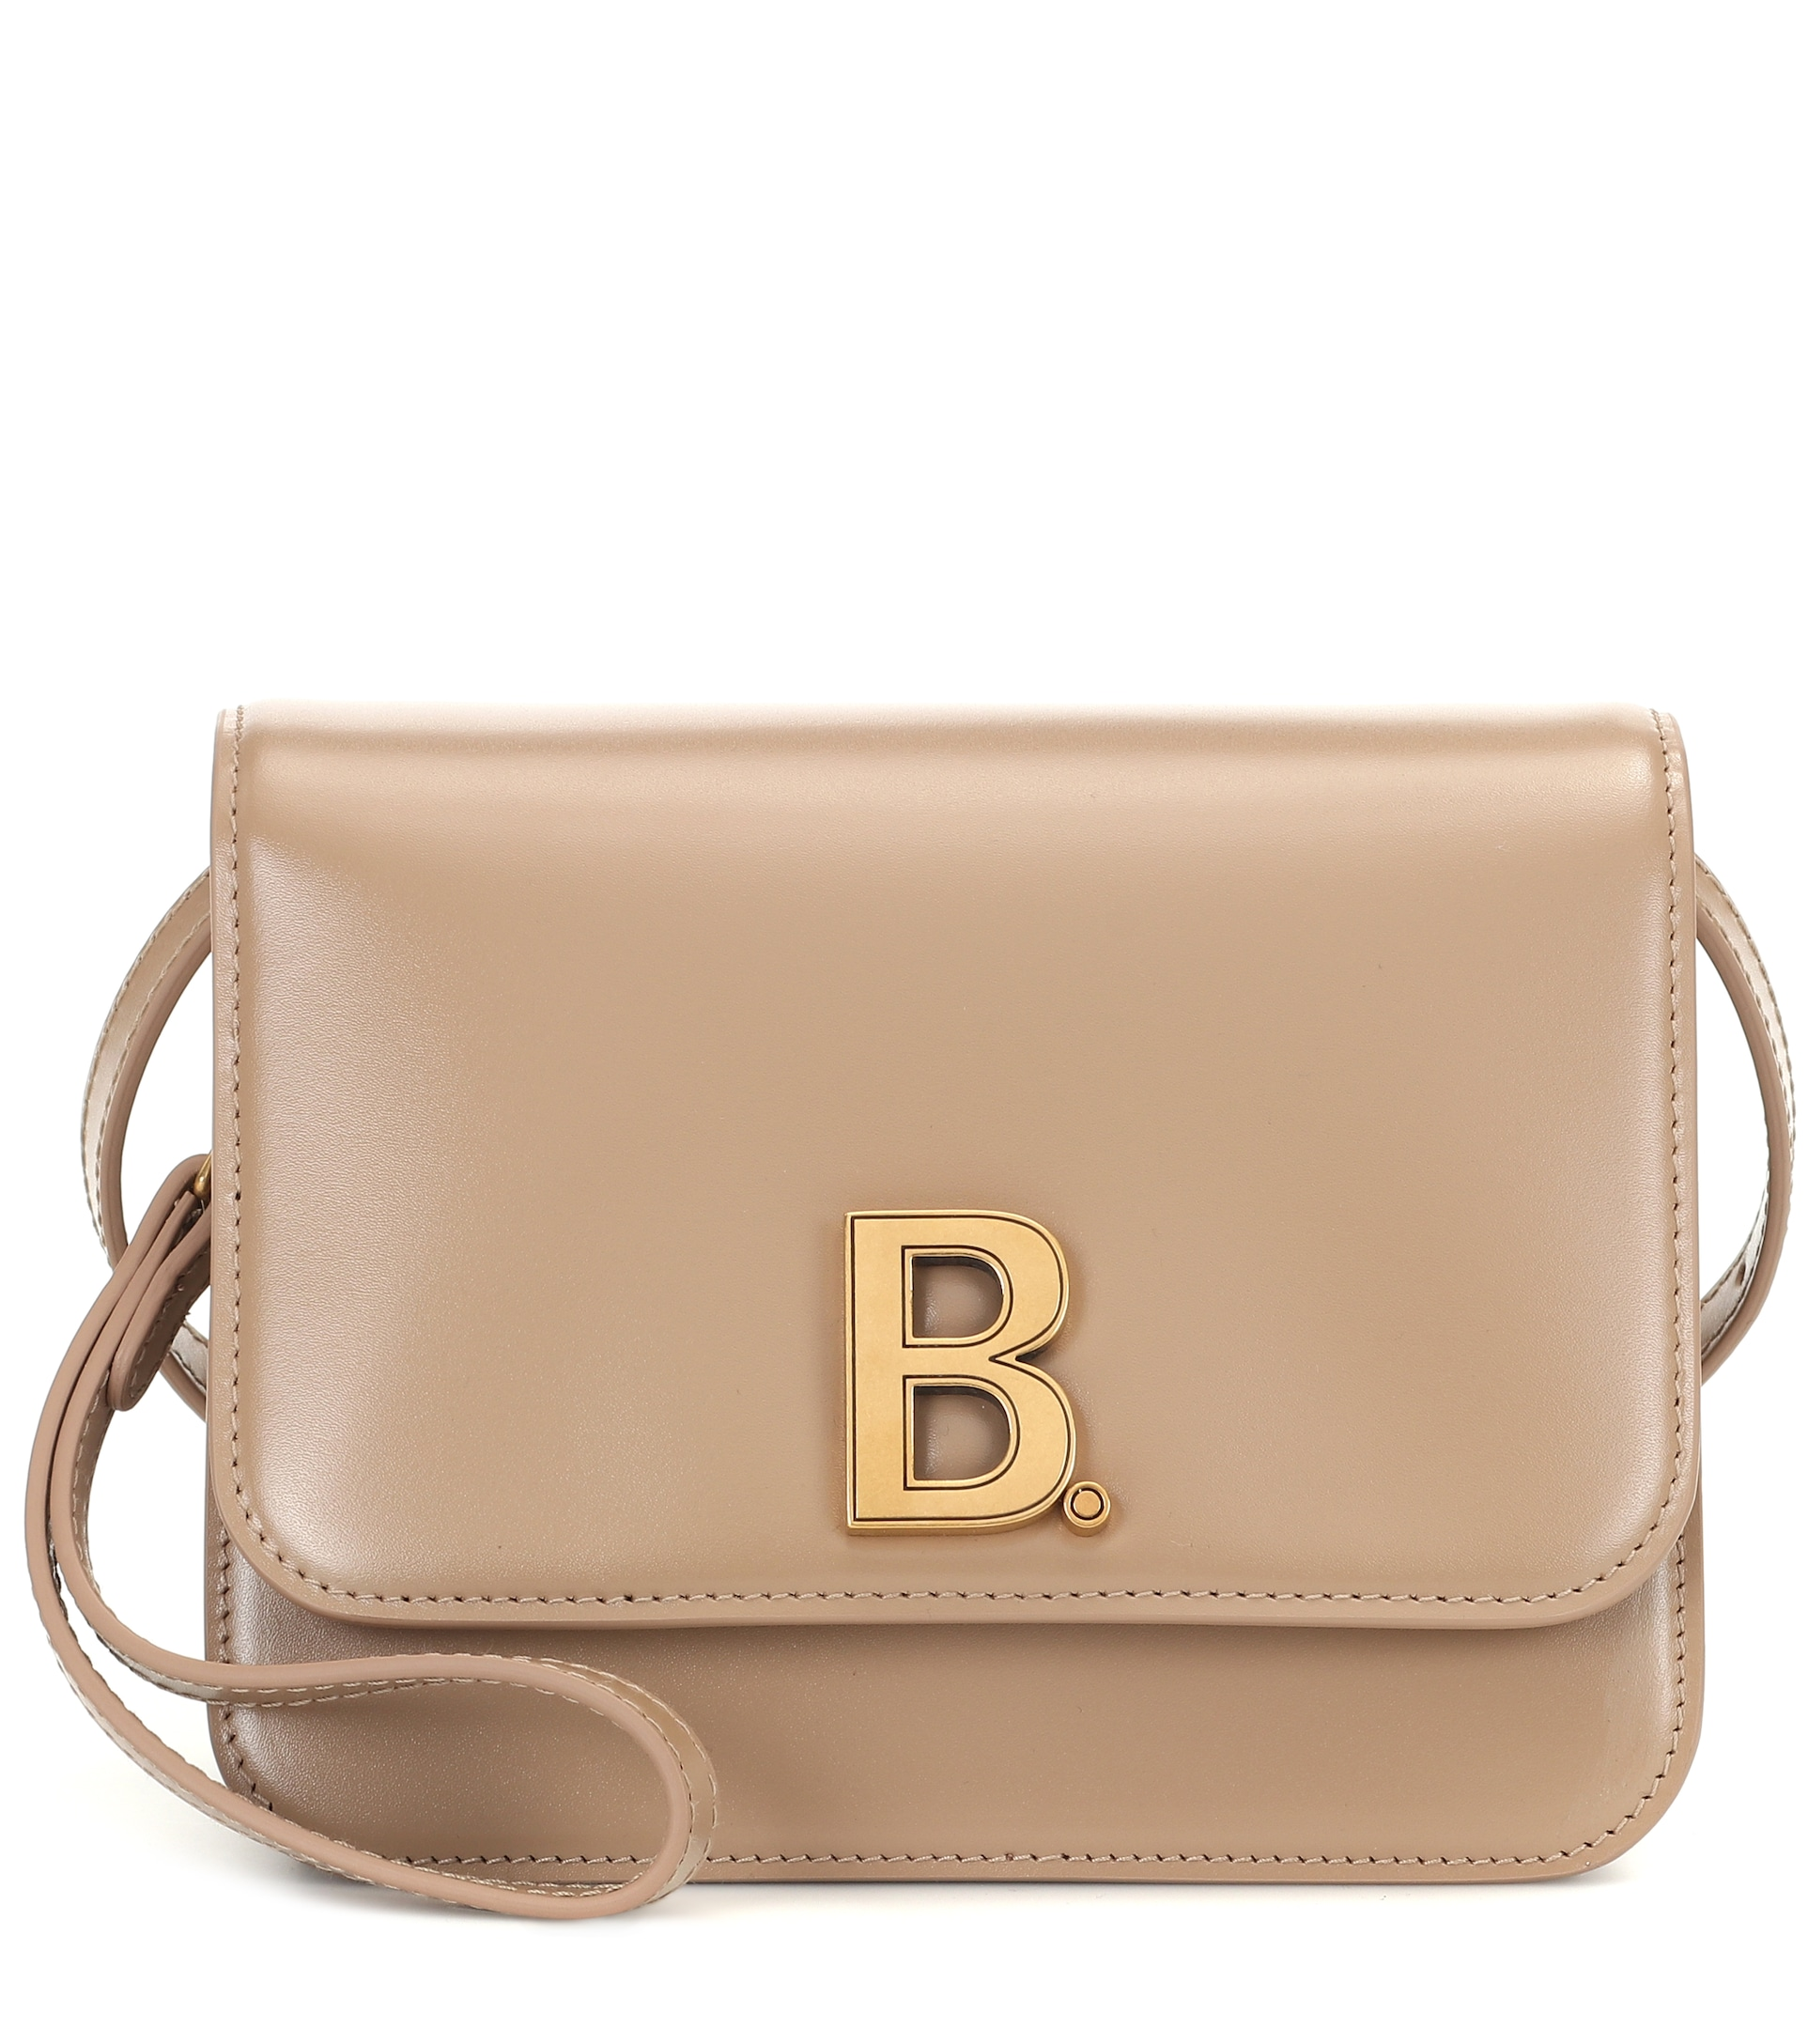 balenciaga-b-leather-shoulder-bag-sand